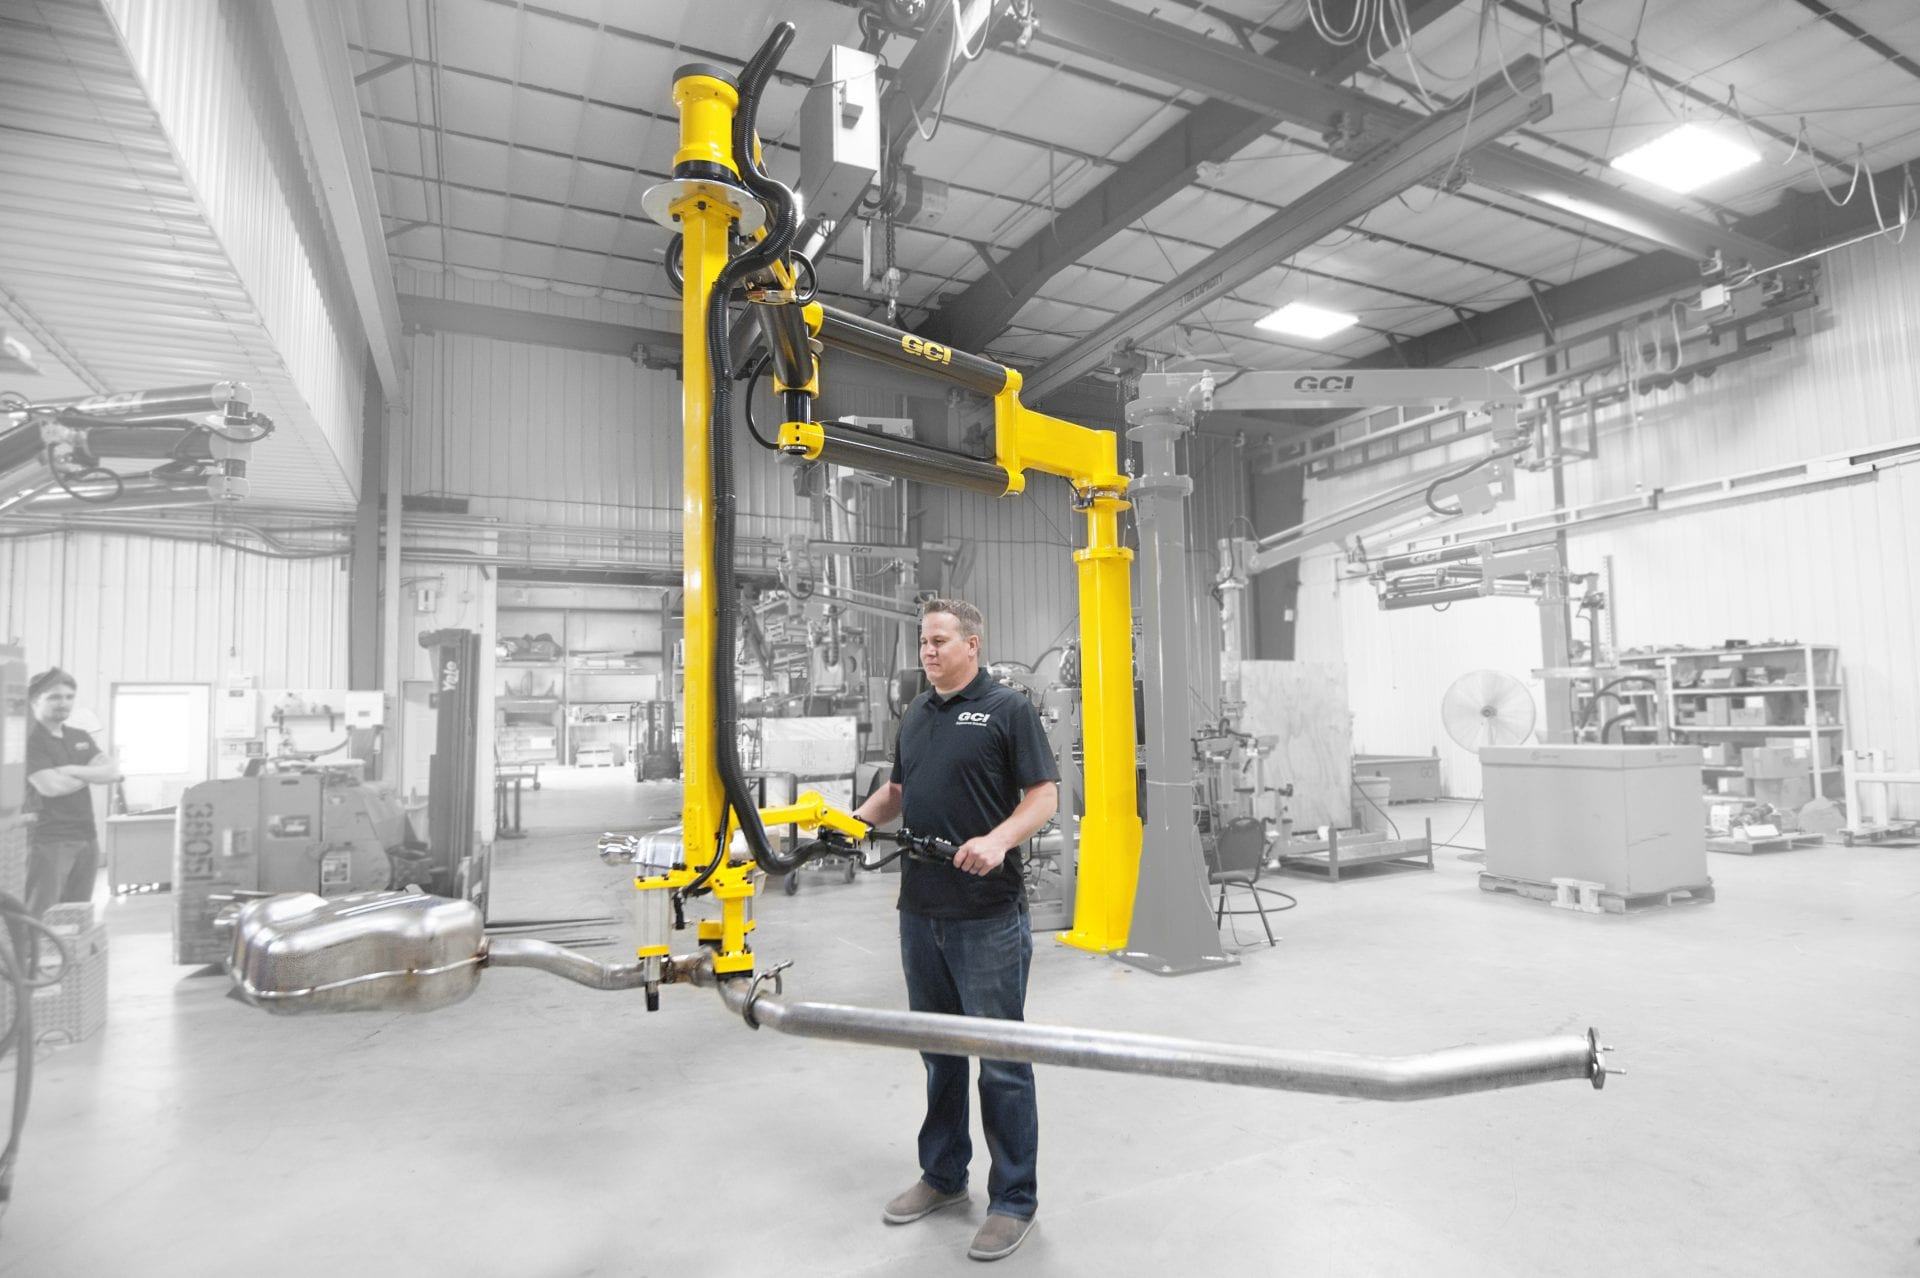 Man lifts heavy exhaust with a GCI industrial manipulator